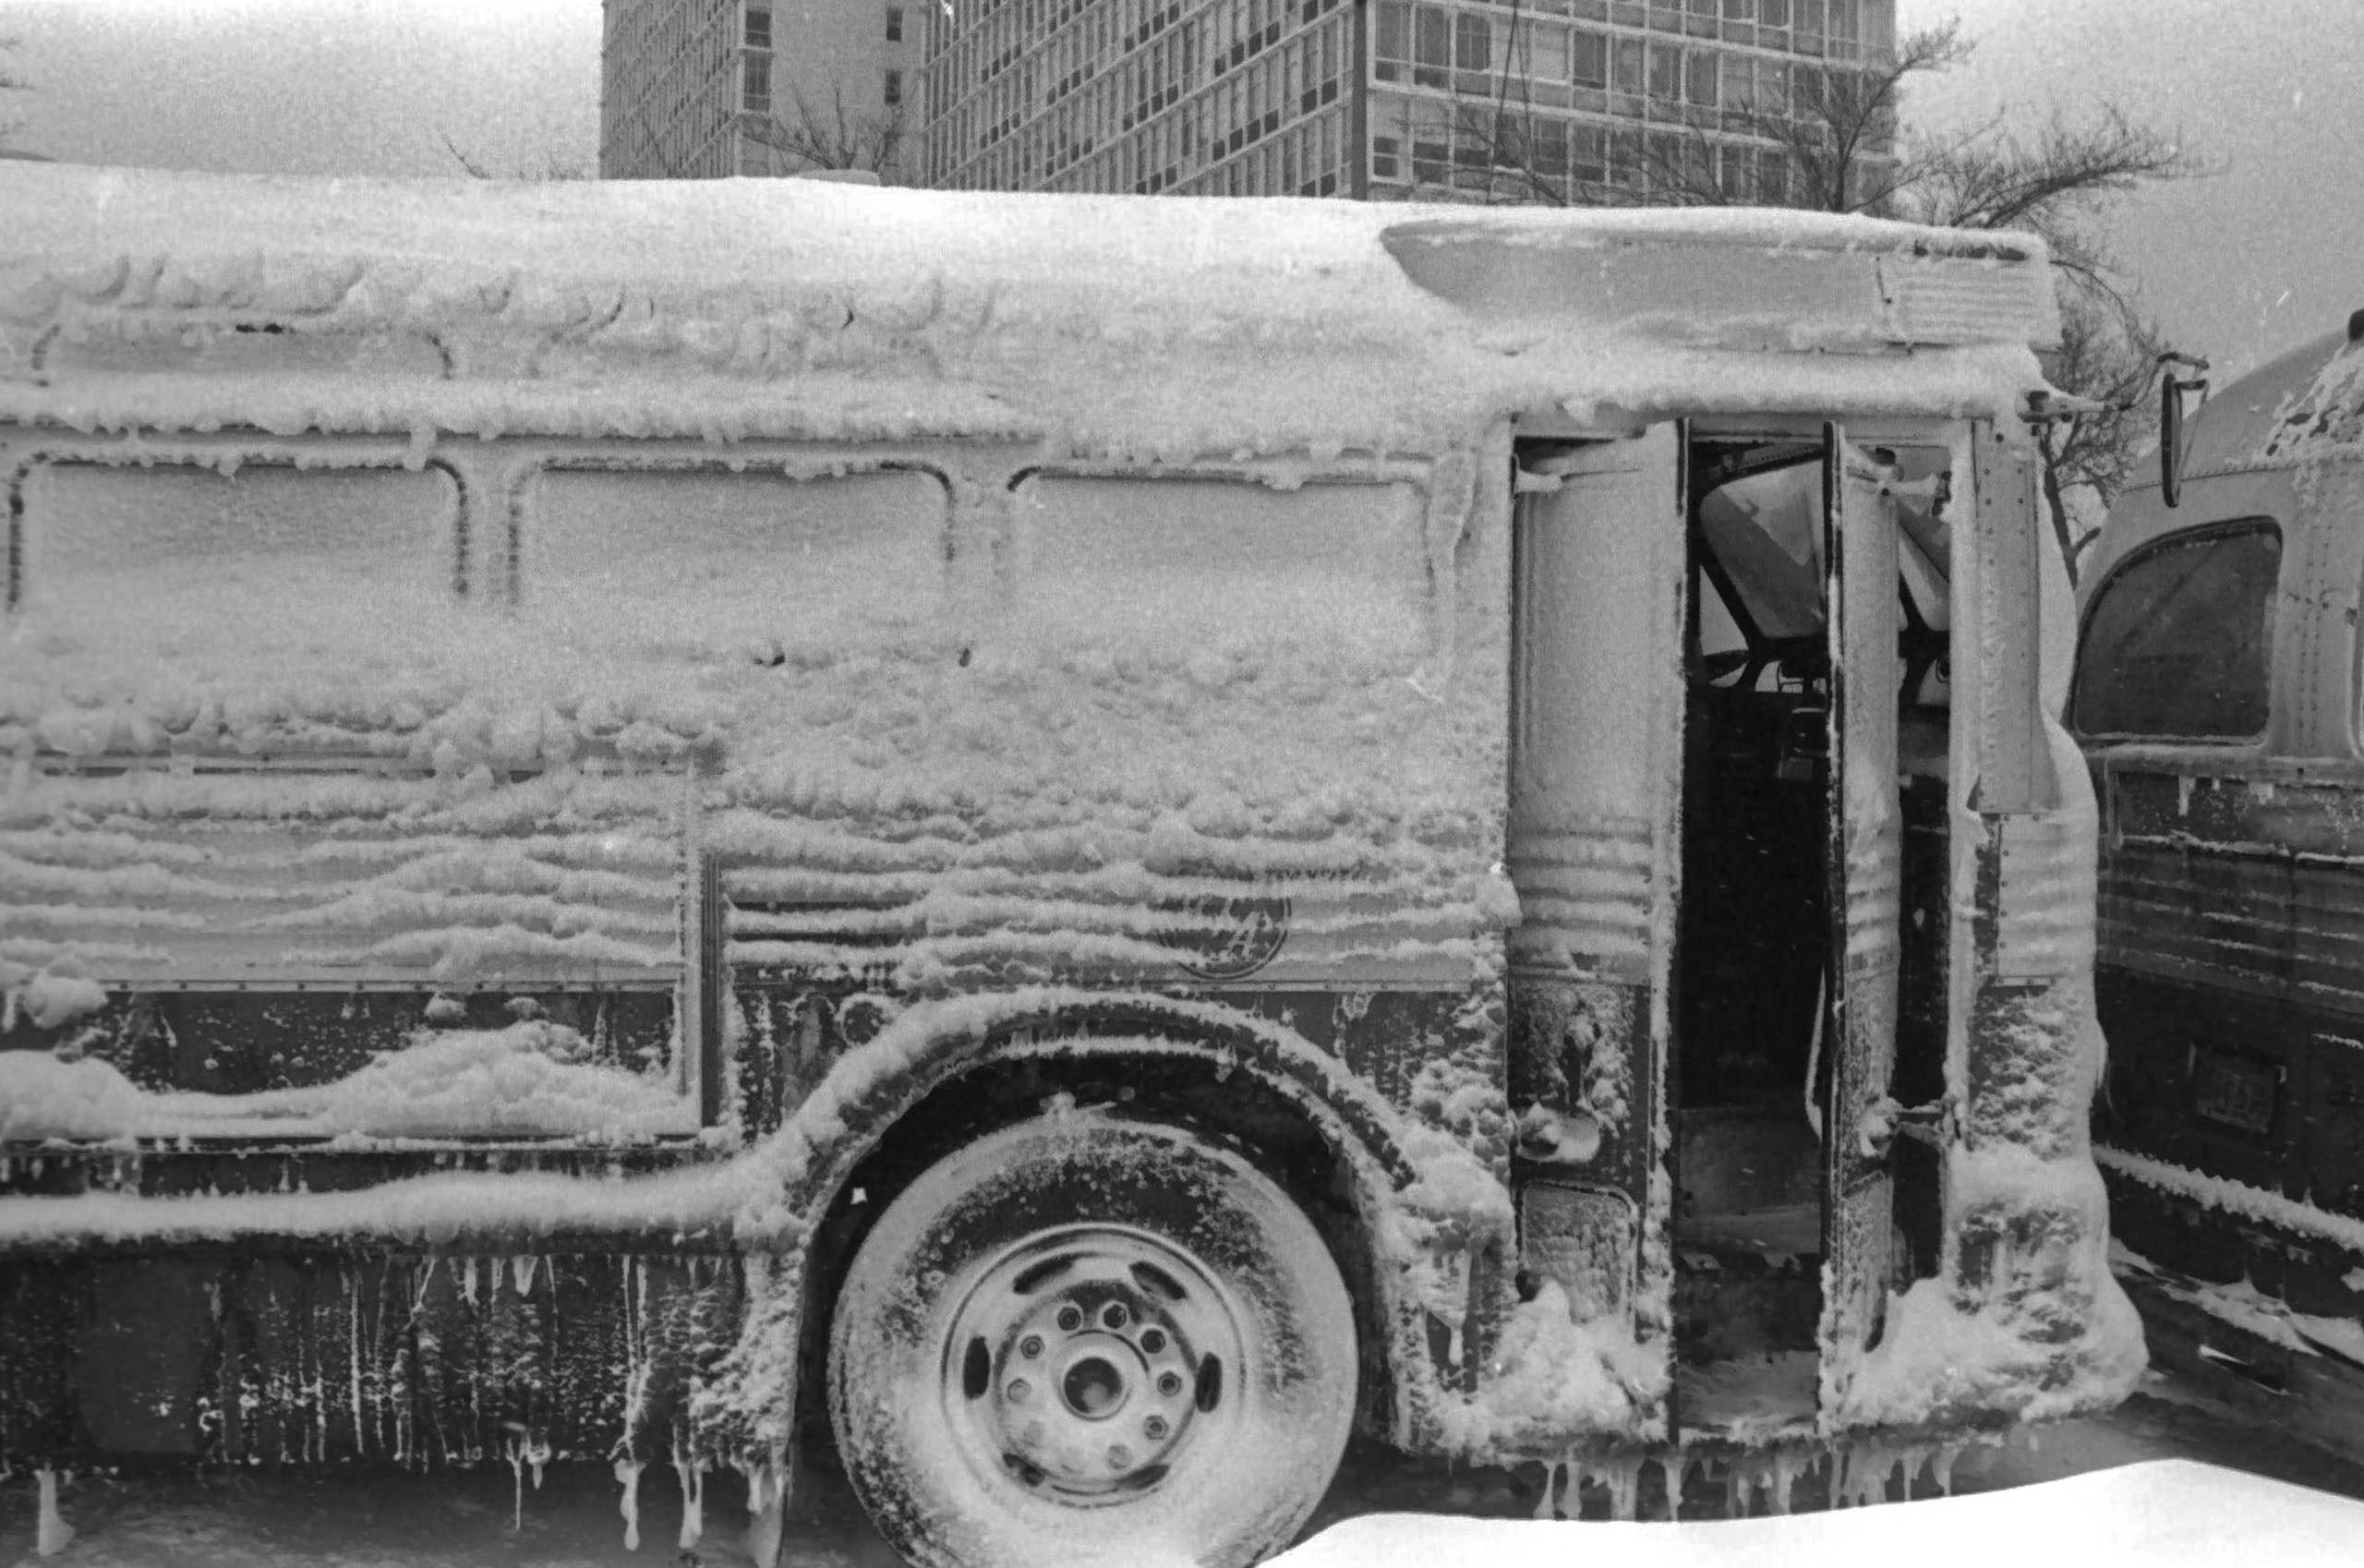 <b>The Great Midwest Blizzard (Jan. 26-27, 1967)</b> This blizzard raged from the Ohio Valley down to New Mexico. It still holds Chicago's record for heaviest snow fall in 24 hours (23 inches) and resulted in the deaths of 76 people.